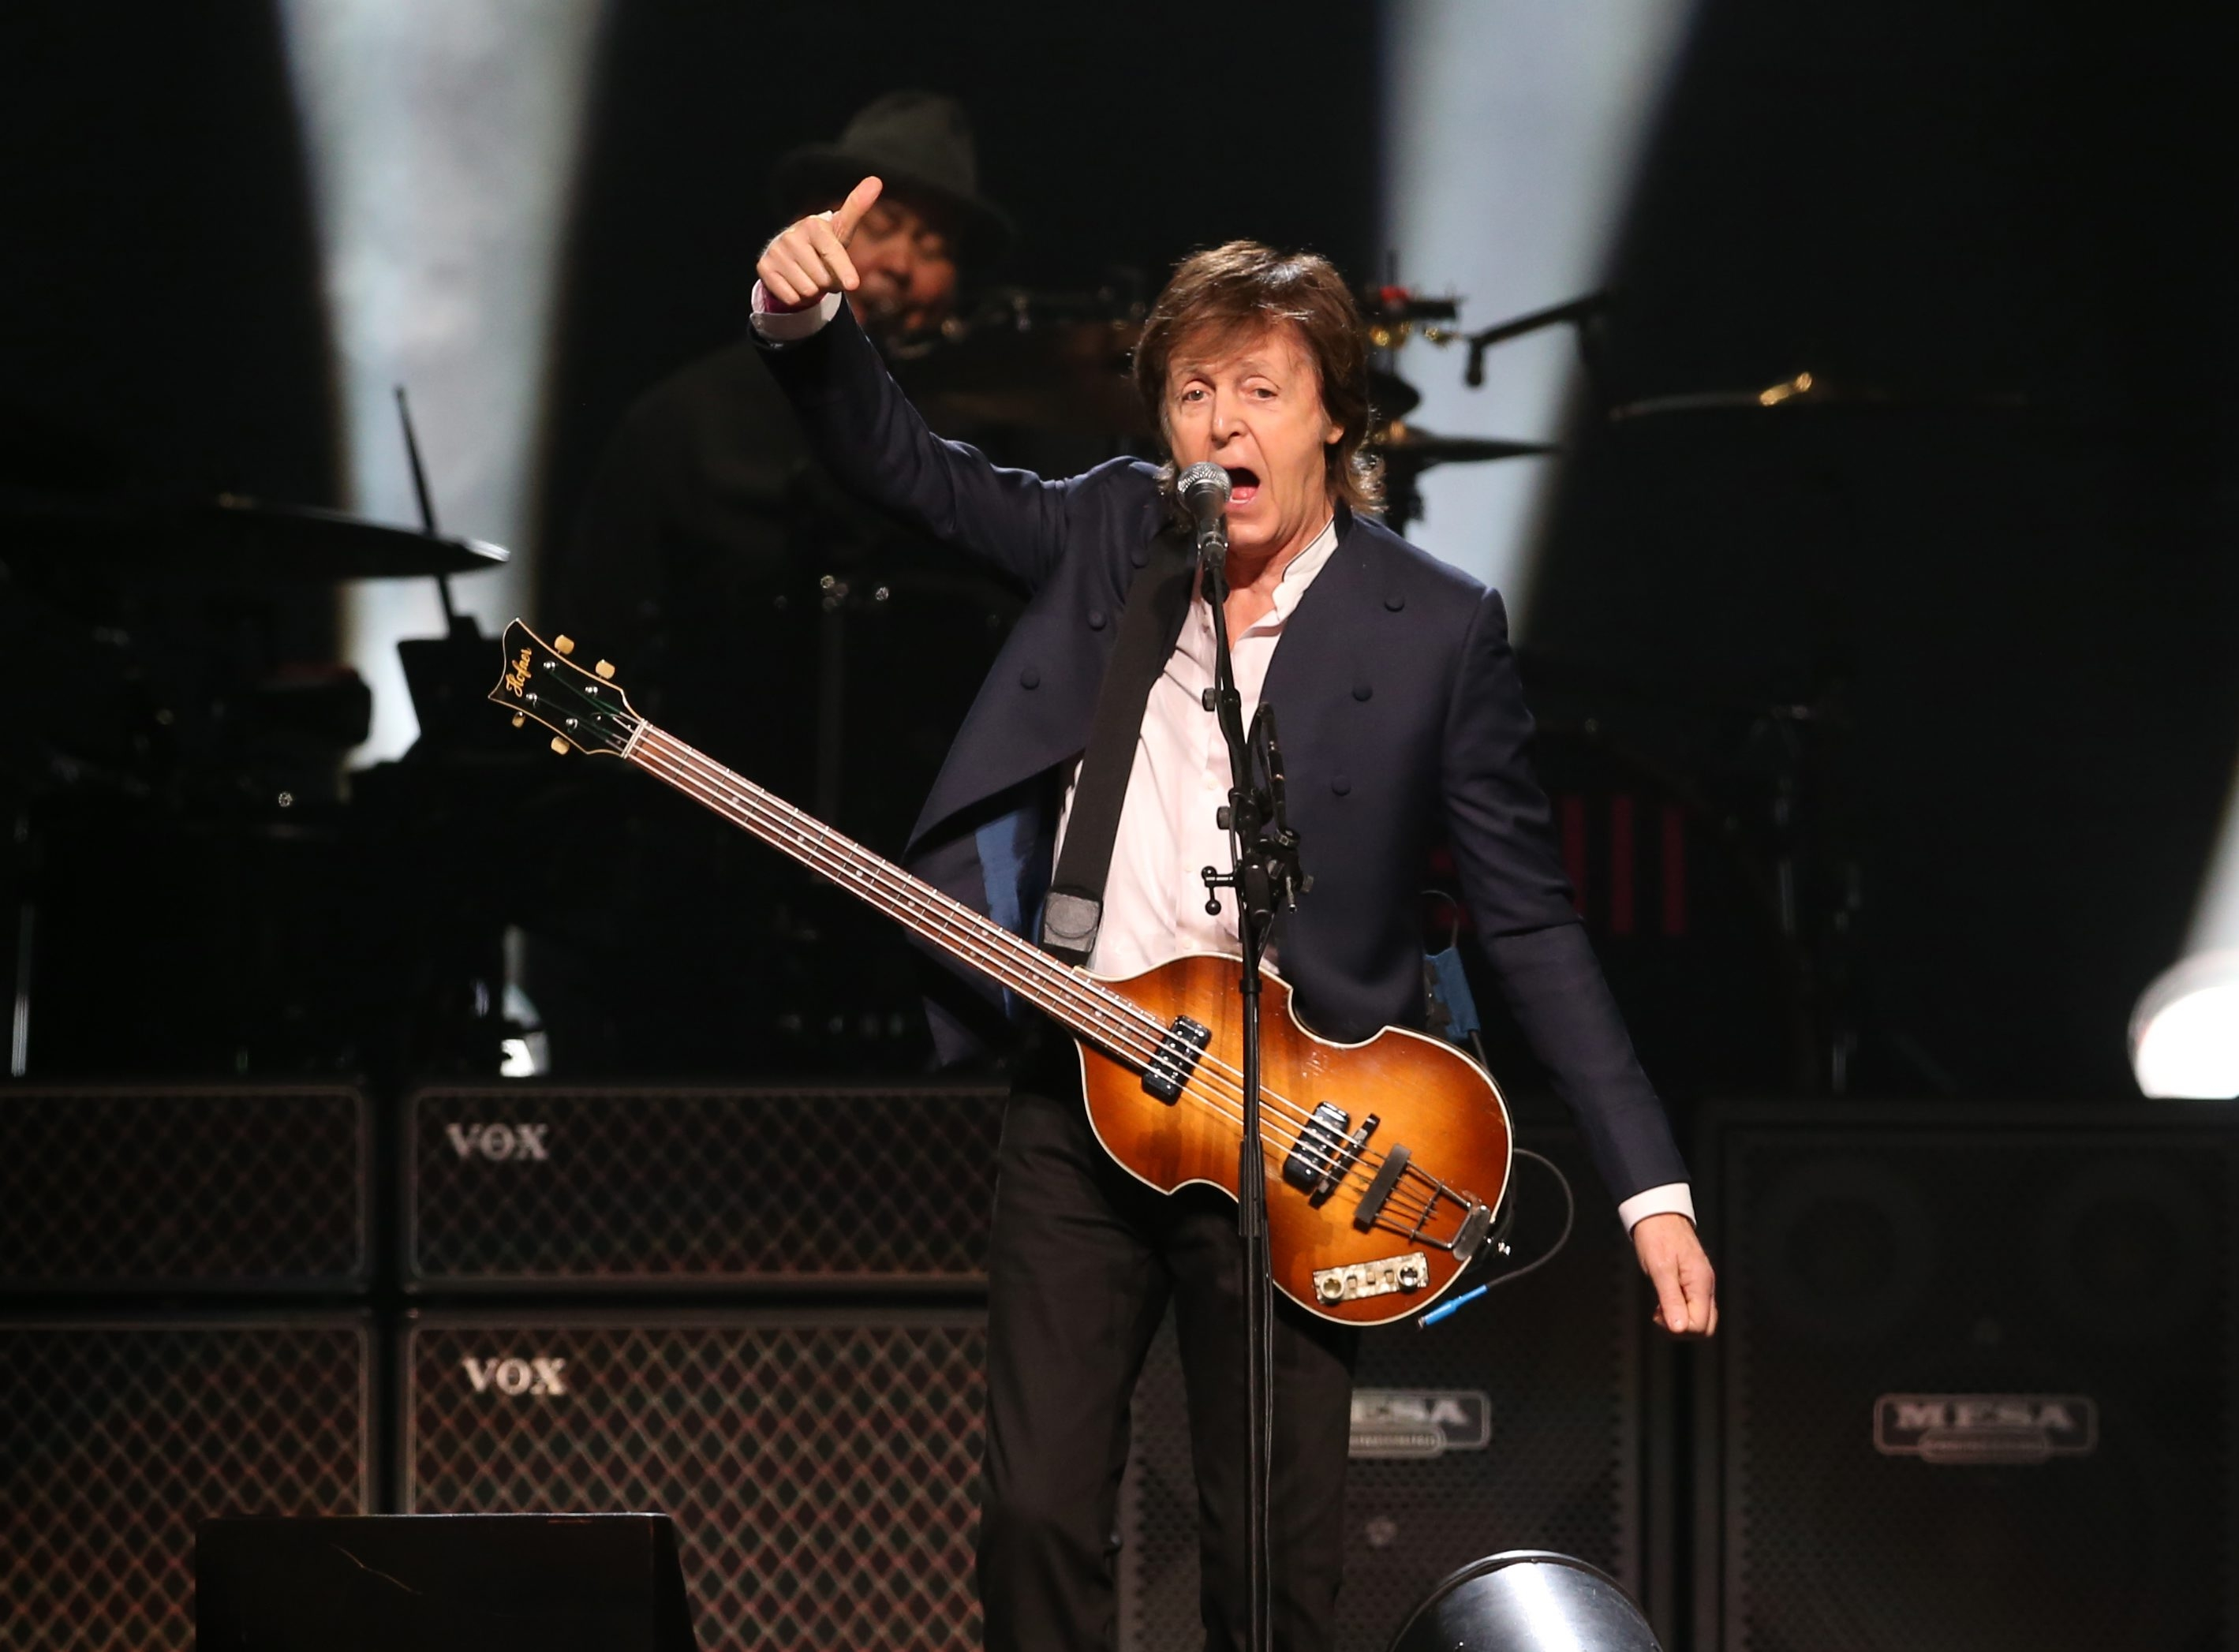 Paul McCartney performs Thursday in First Niagara Center, a sold-out, multimedia show that included a continuous stream of video images playing on a screen behind him.